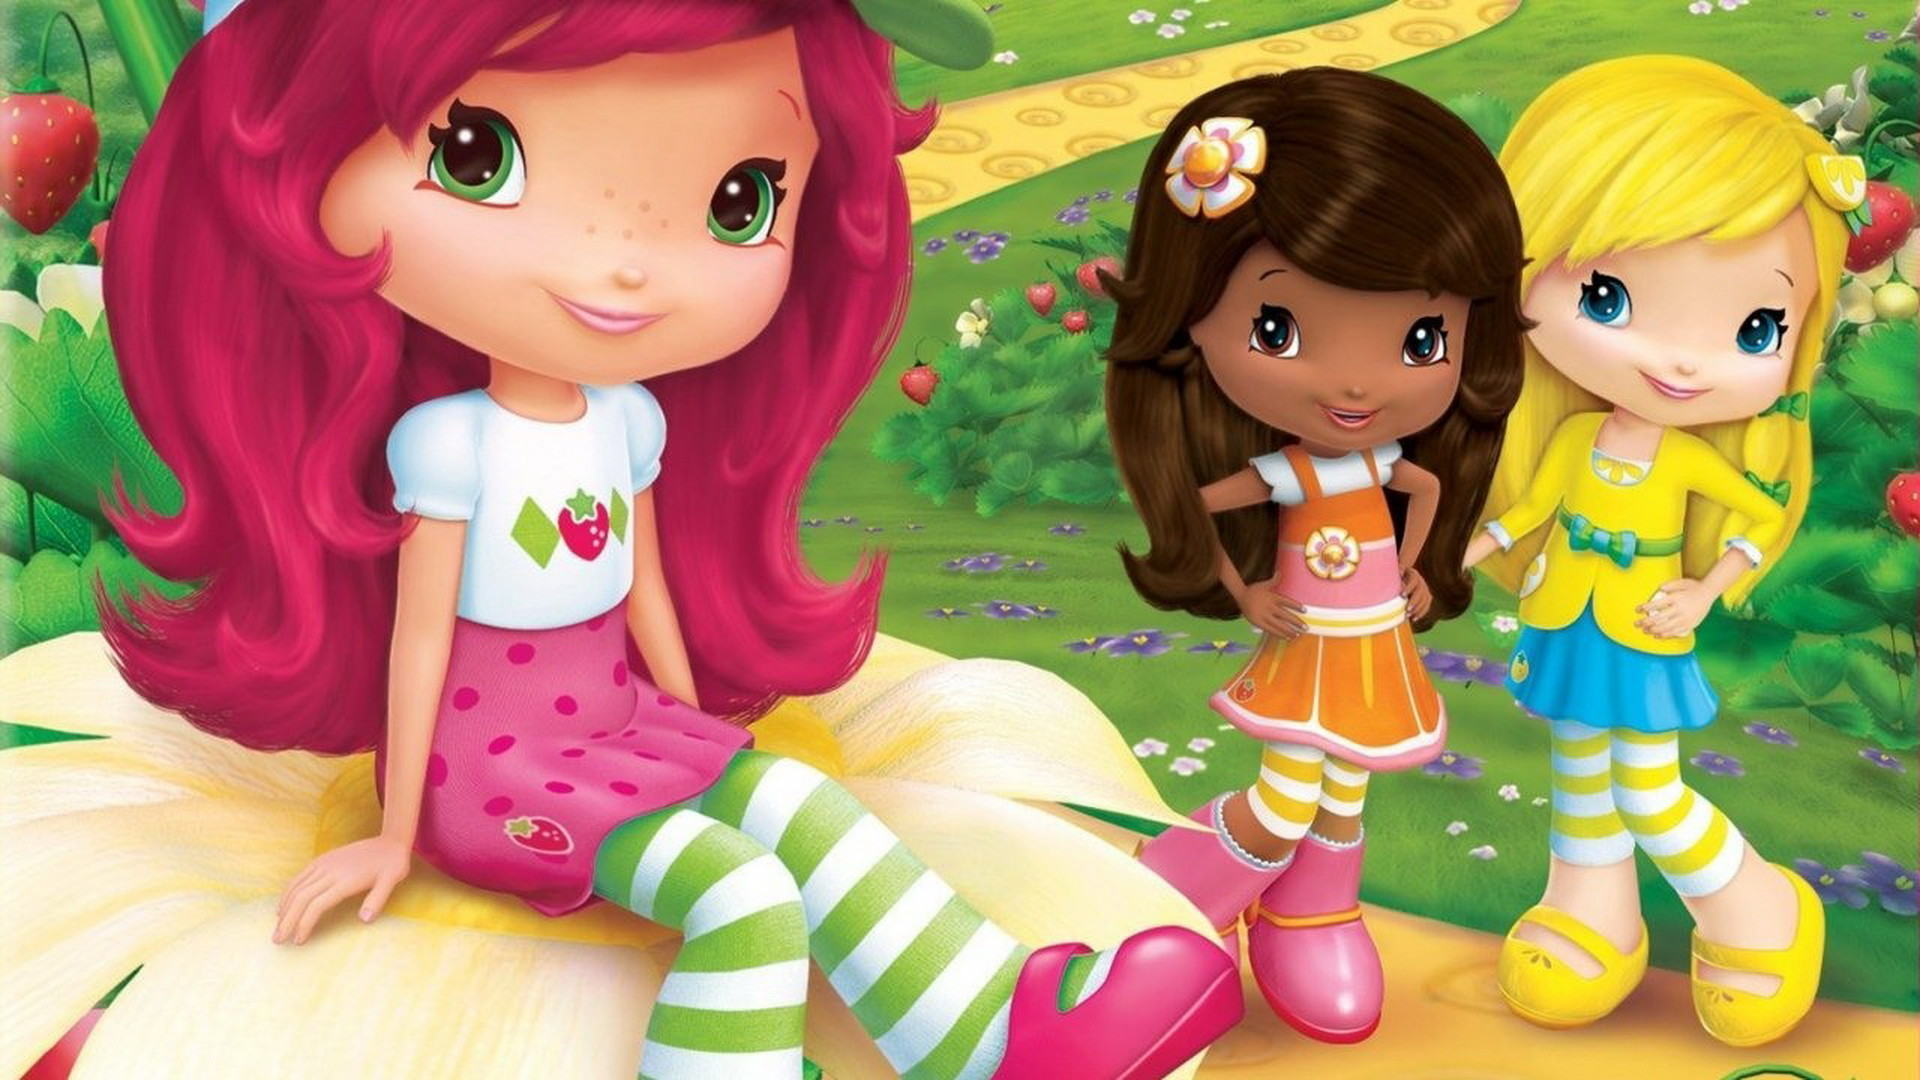 1920x1080 Related Wallpapers from Cute Lilo and Stitch Wallpaper. Strawberry Shortcake